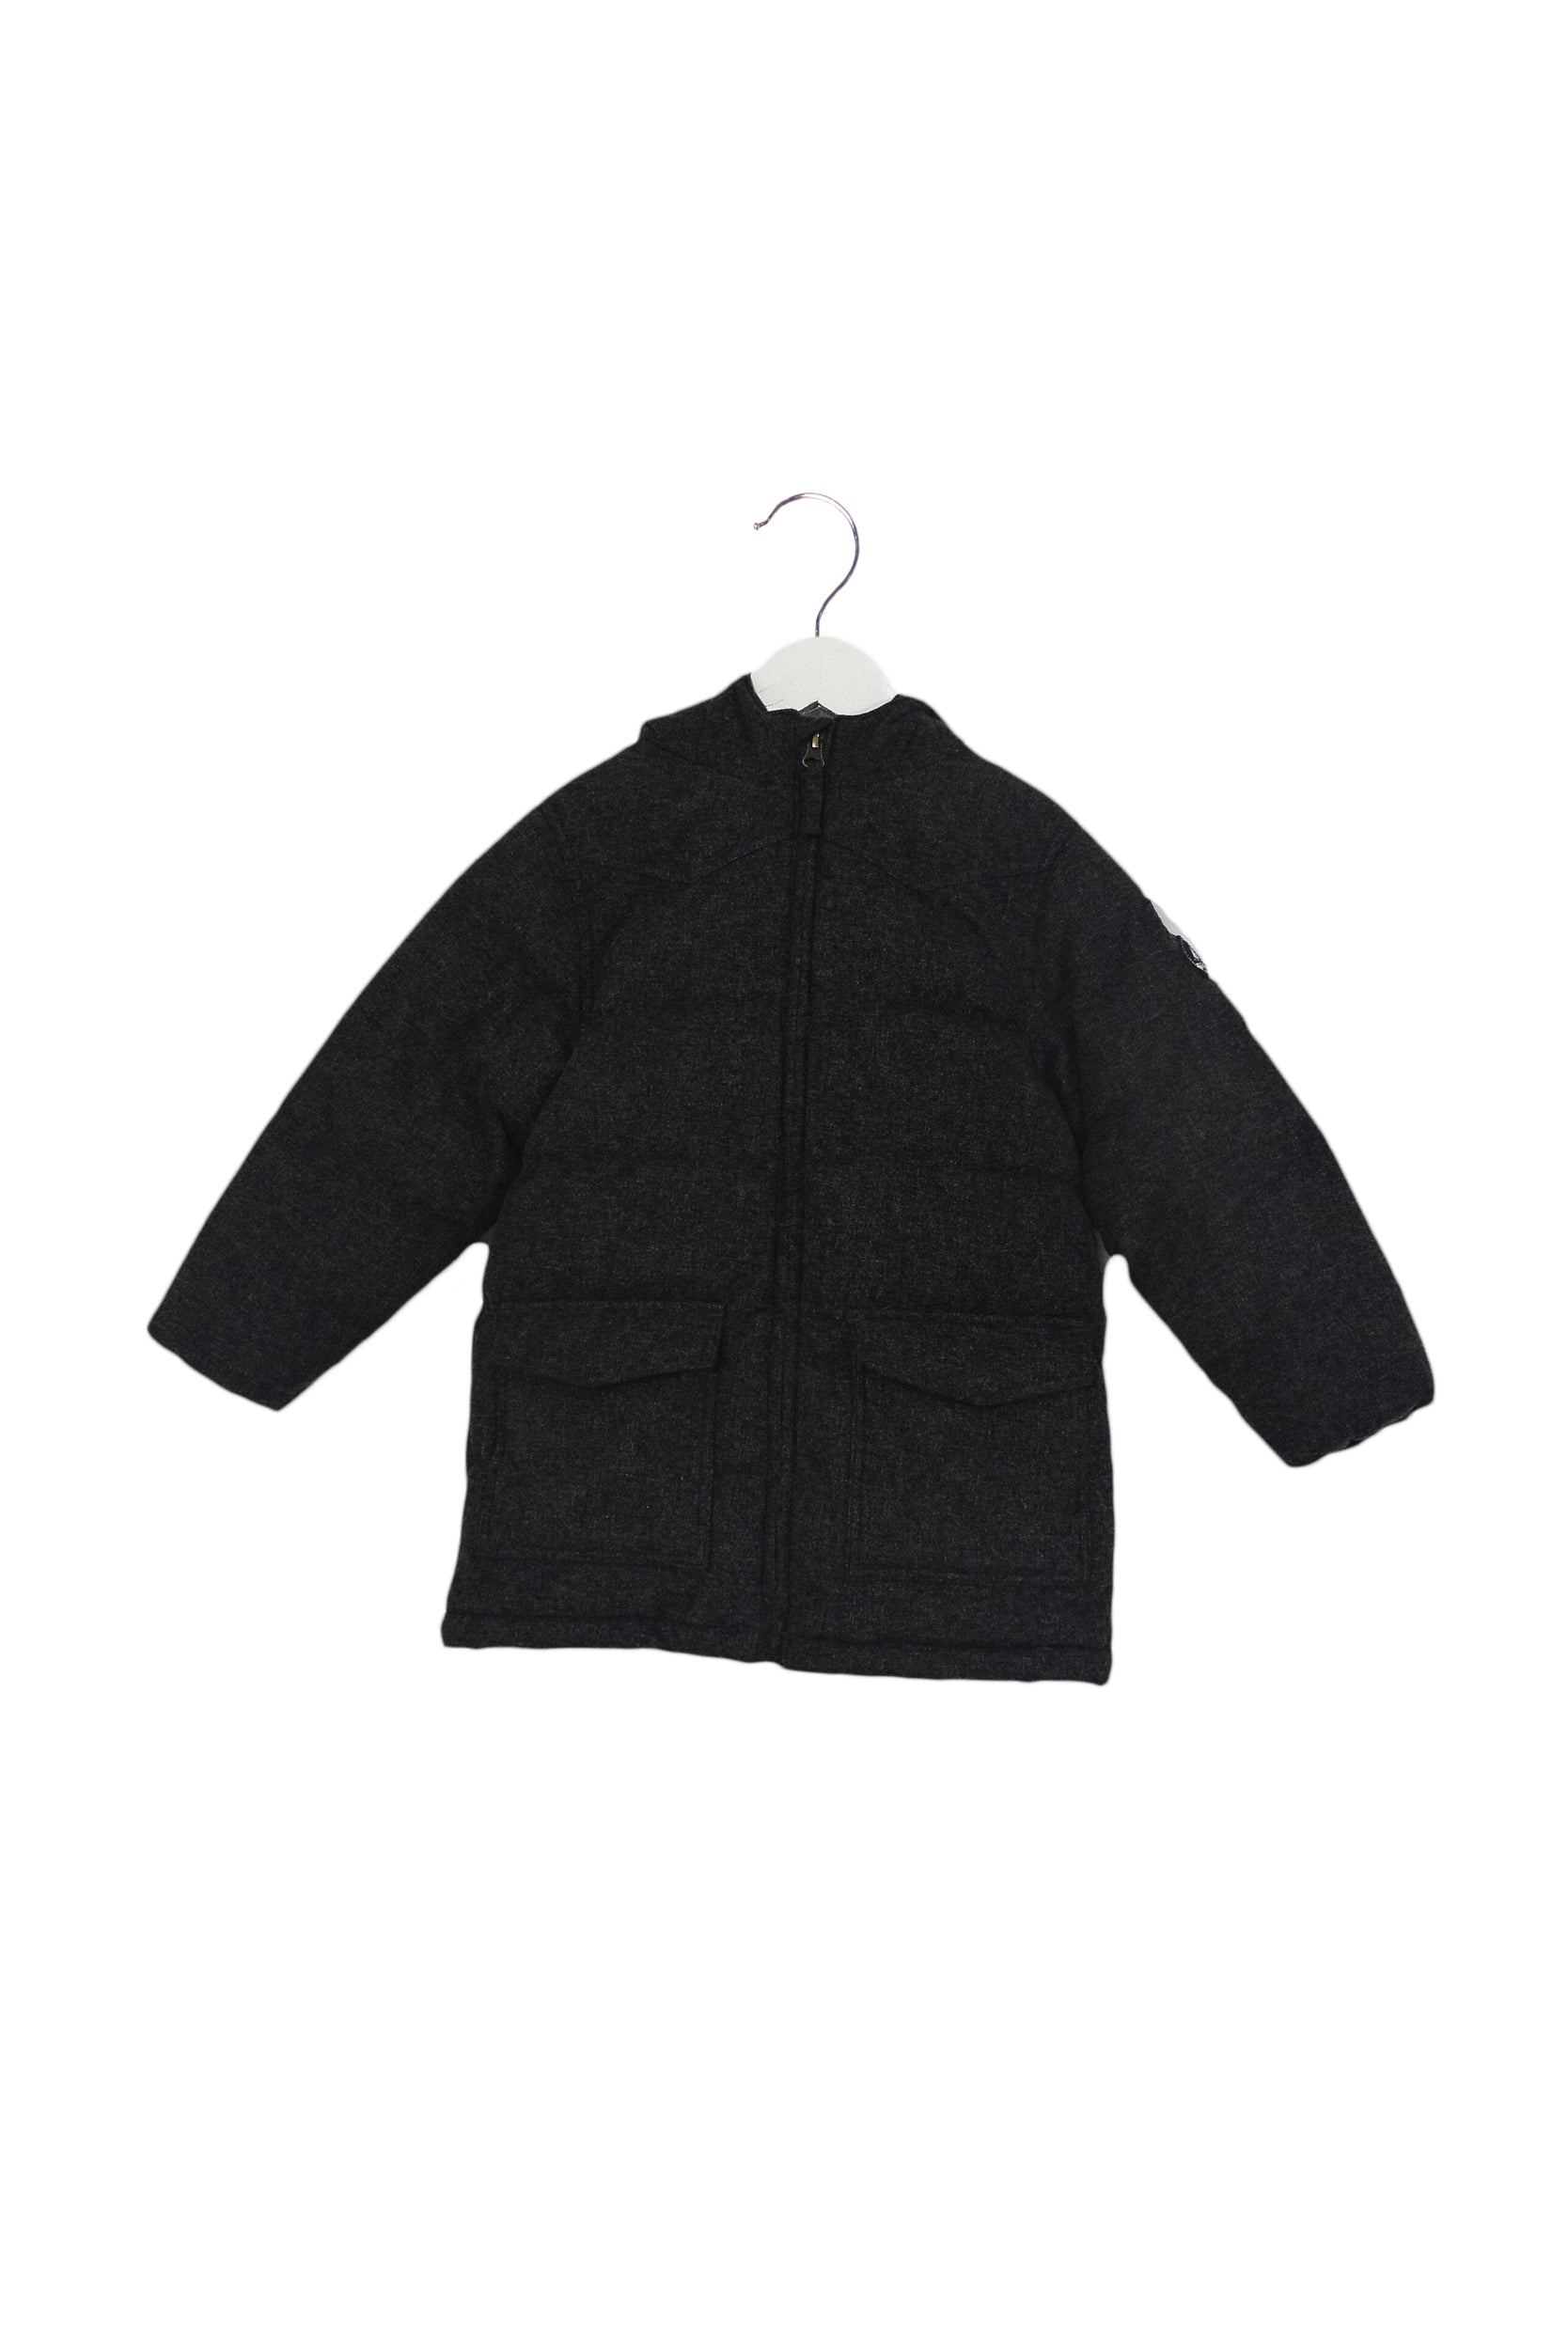 Puffer Jacket 4T at Retykle